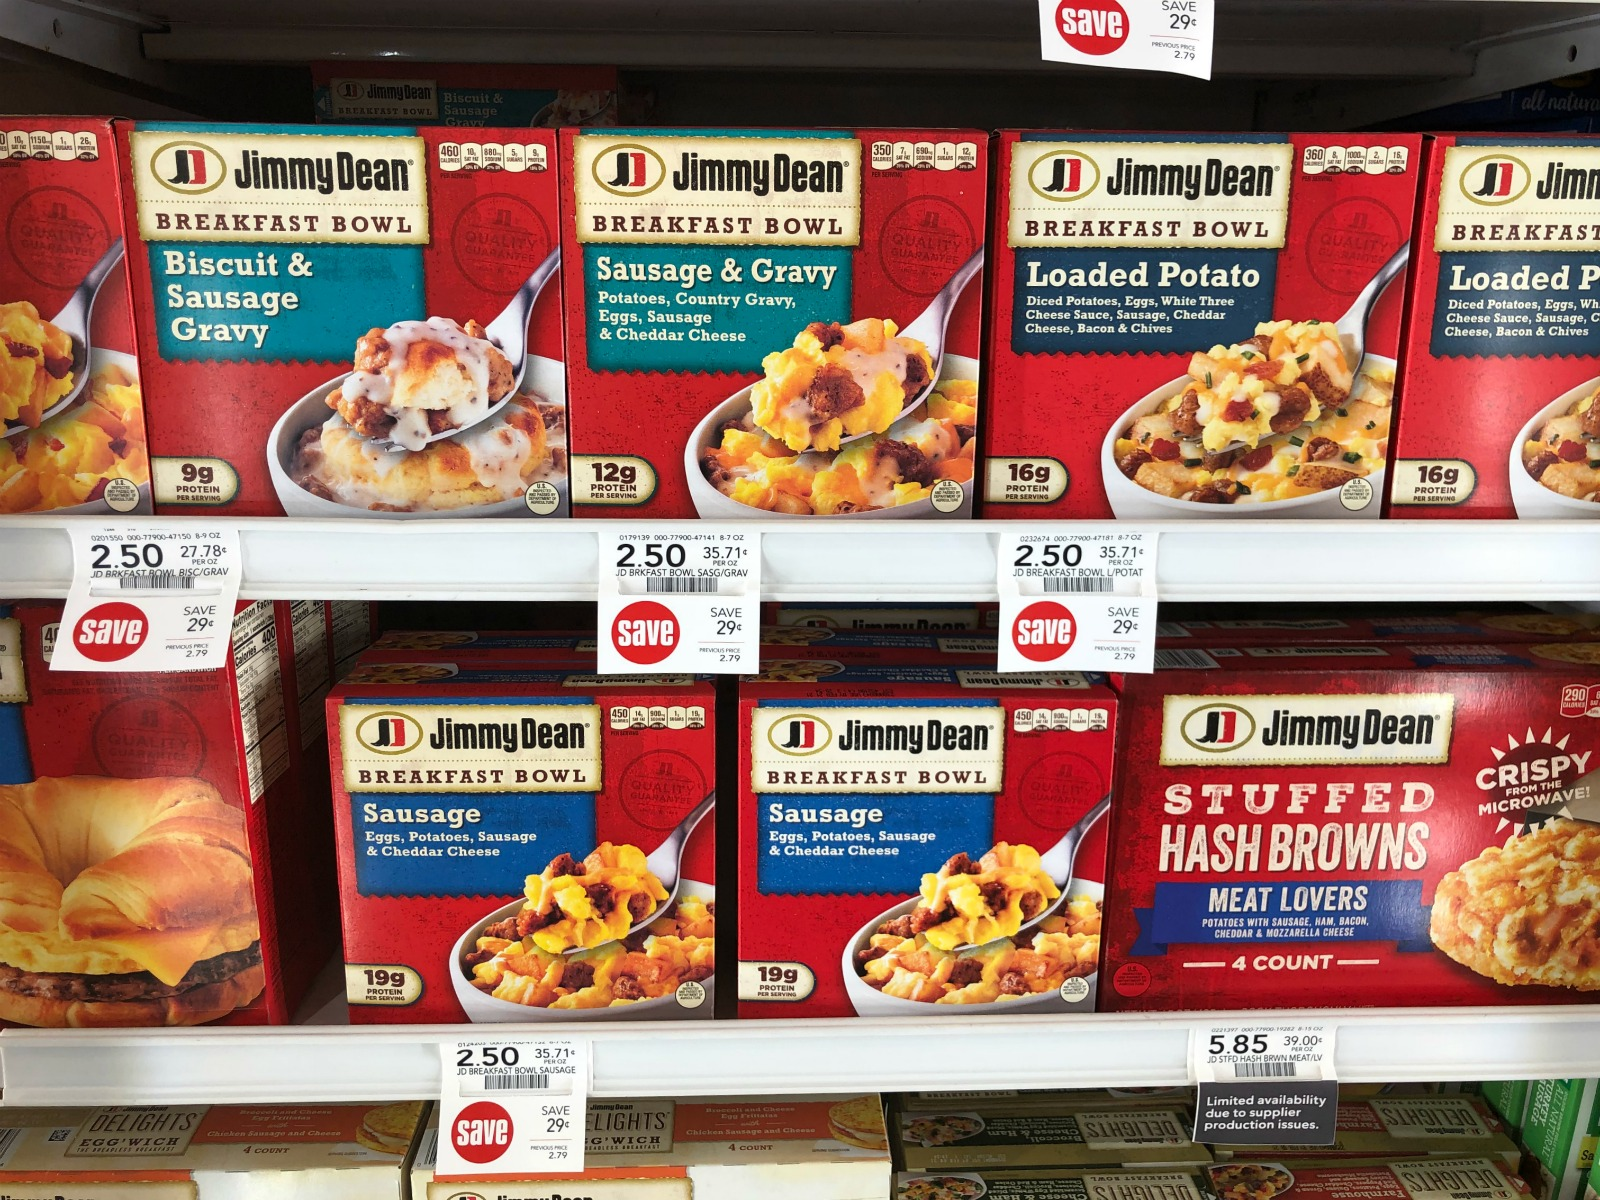 Save On Tasty Tyson® Products At Publix - Clip The High Value $3 Digital Coupon on I Heart Publix